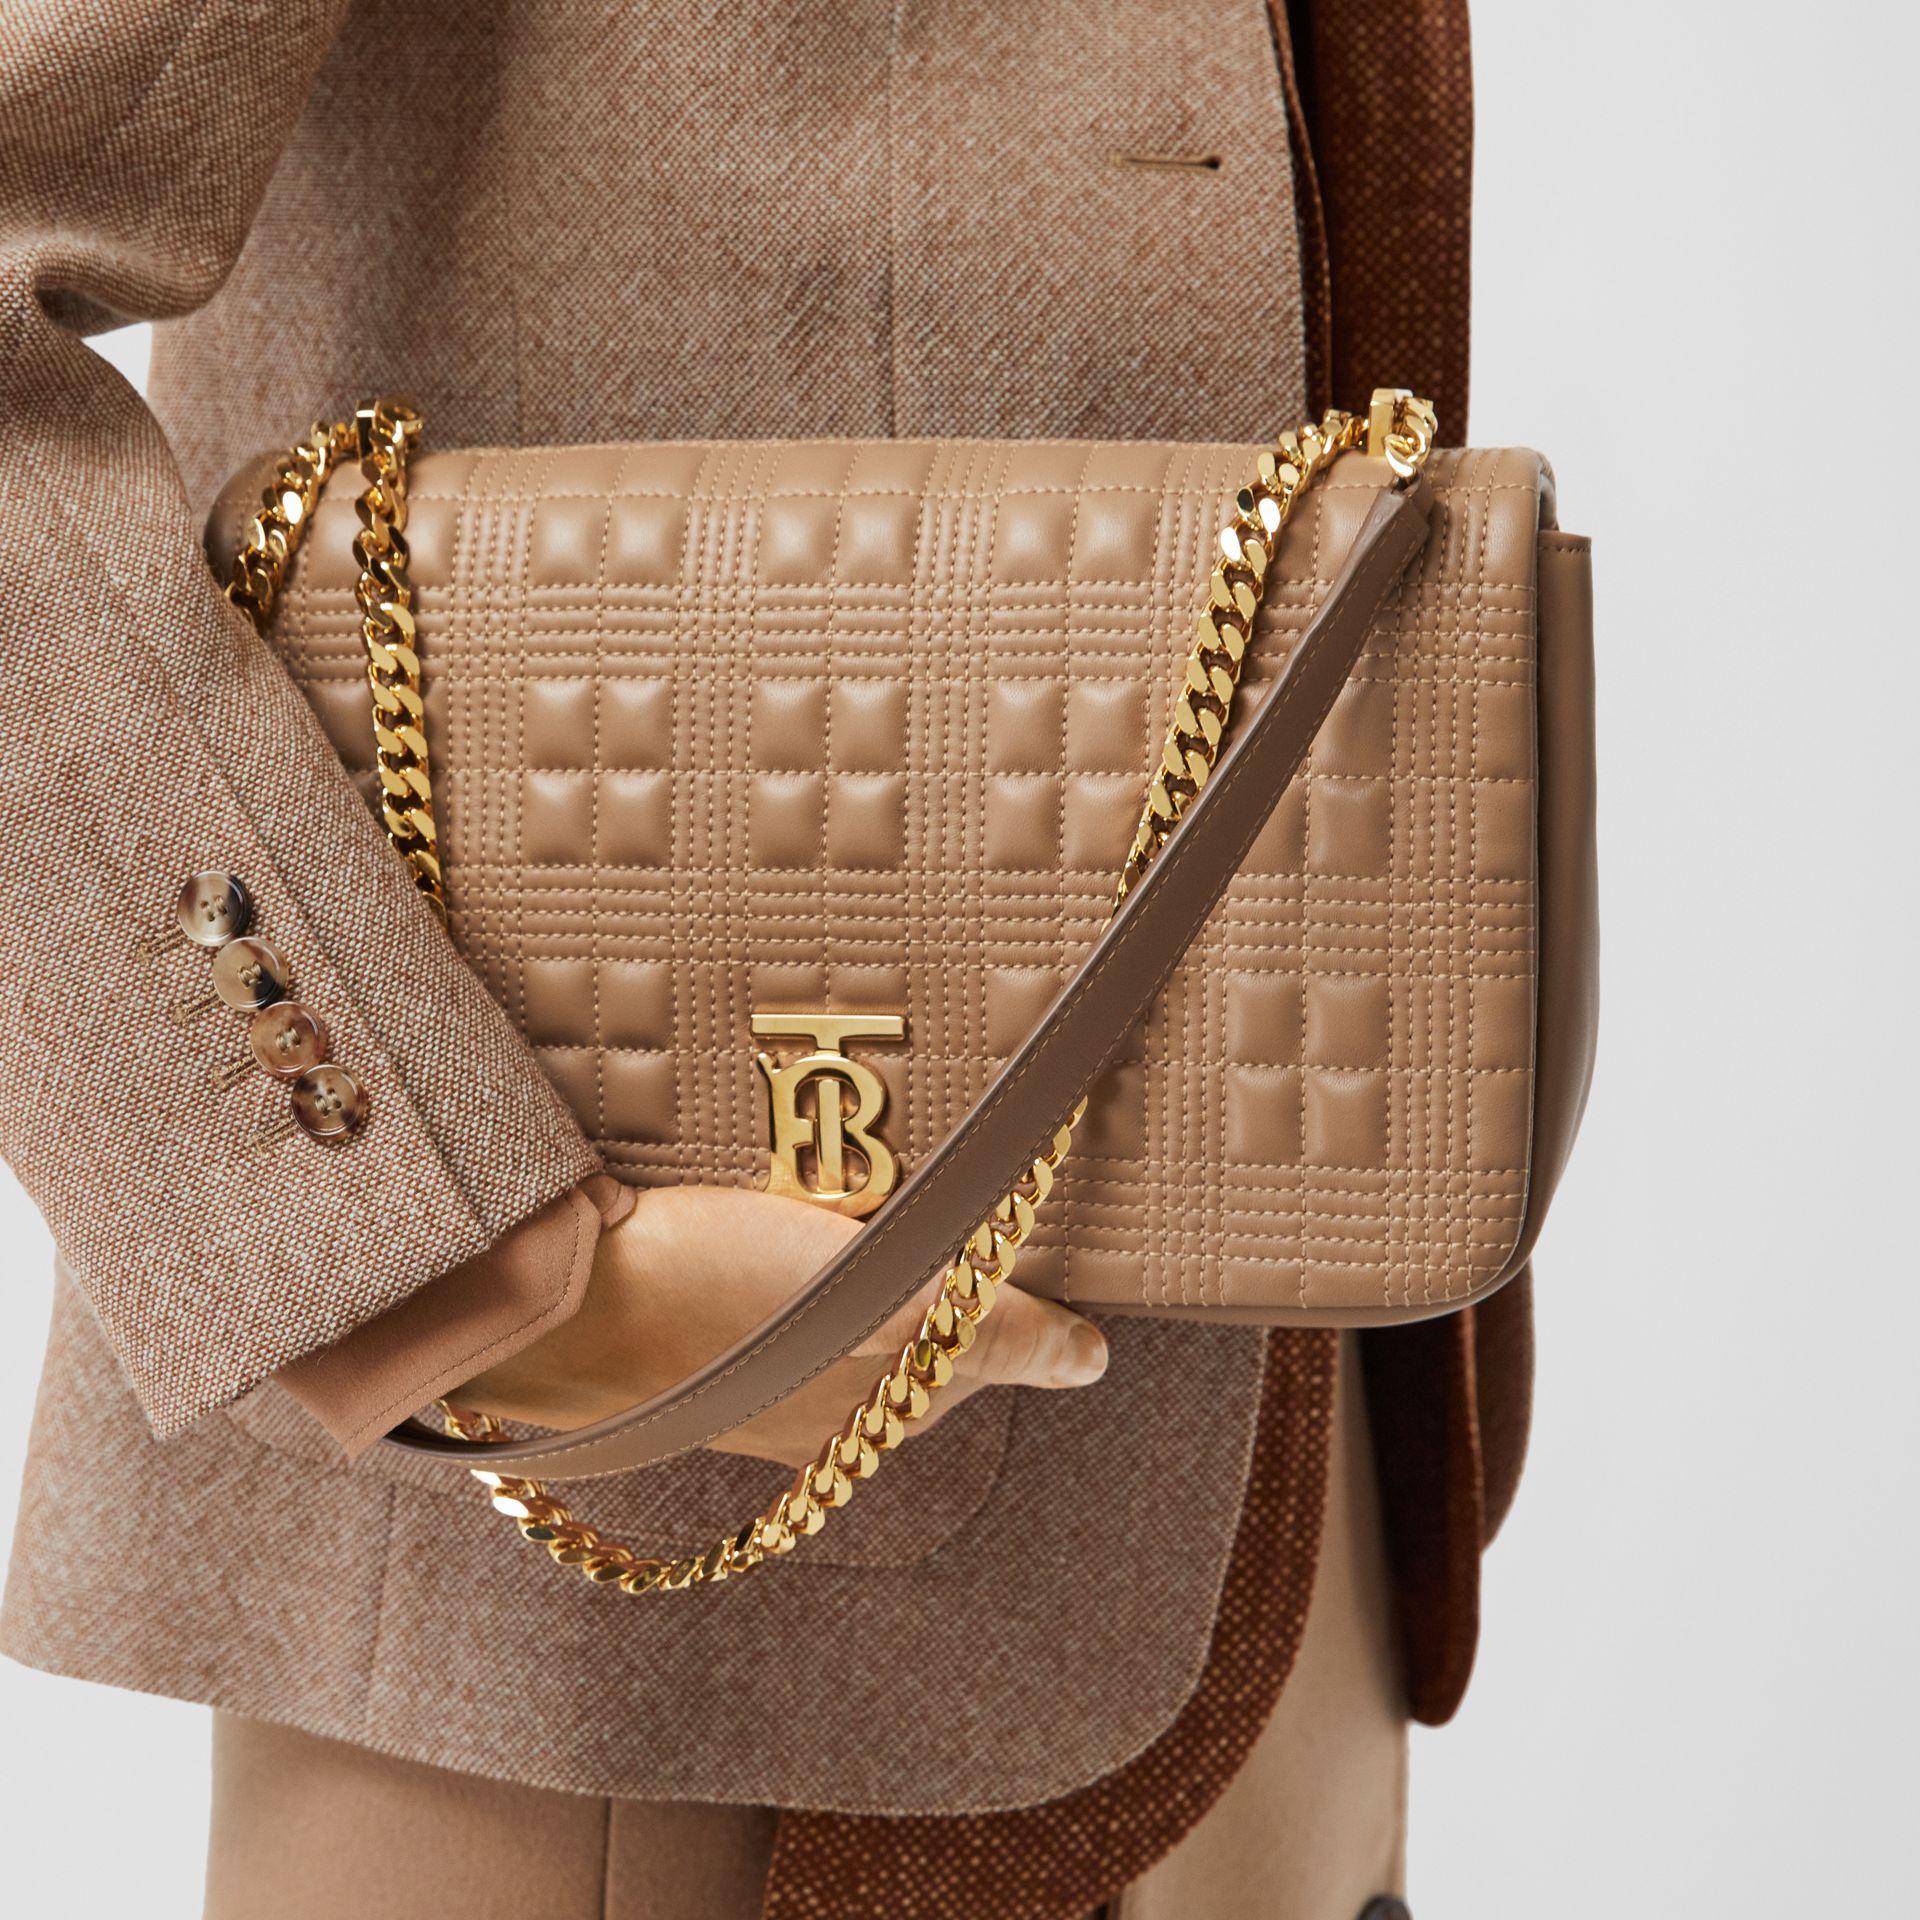 Medium Quilted Lambskin Lola Bag in Camel/light Gold - Women | Burberry Australia - gallery image 8